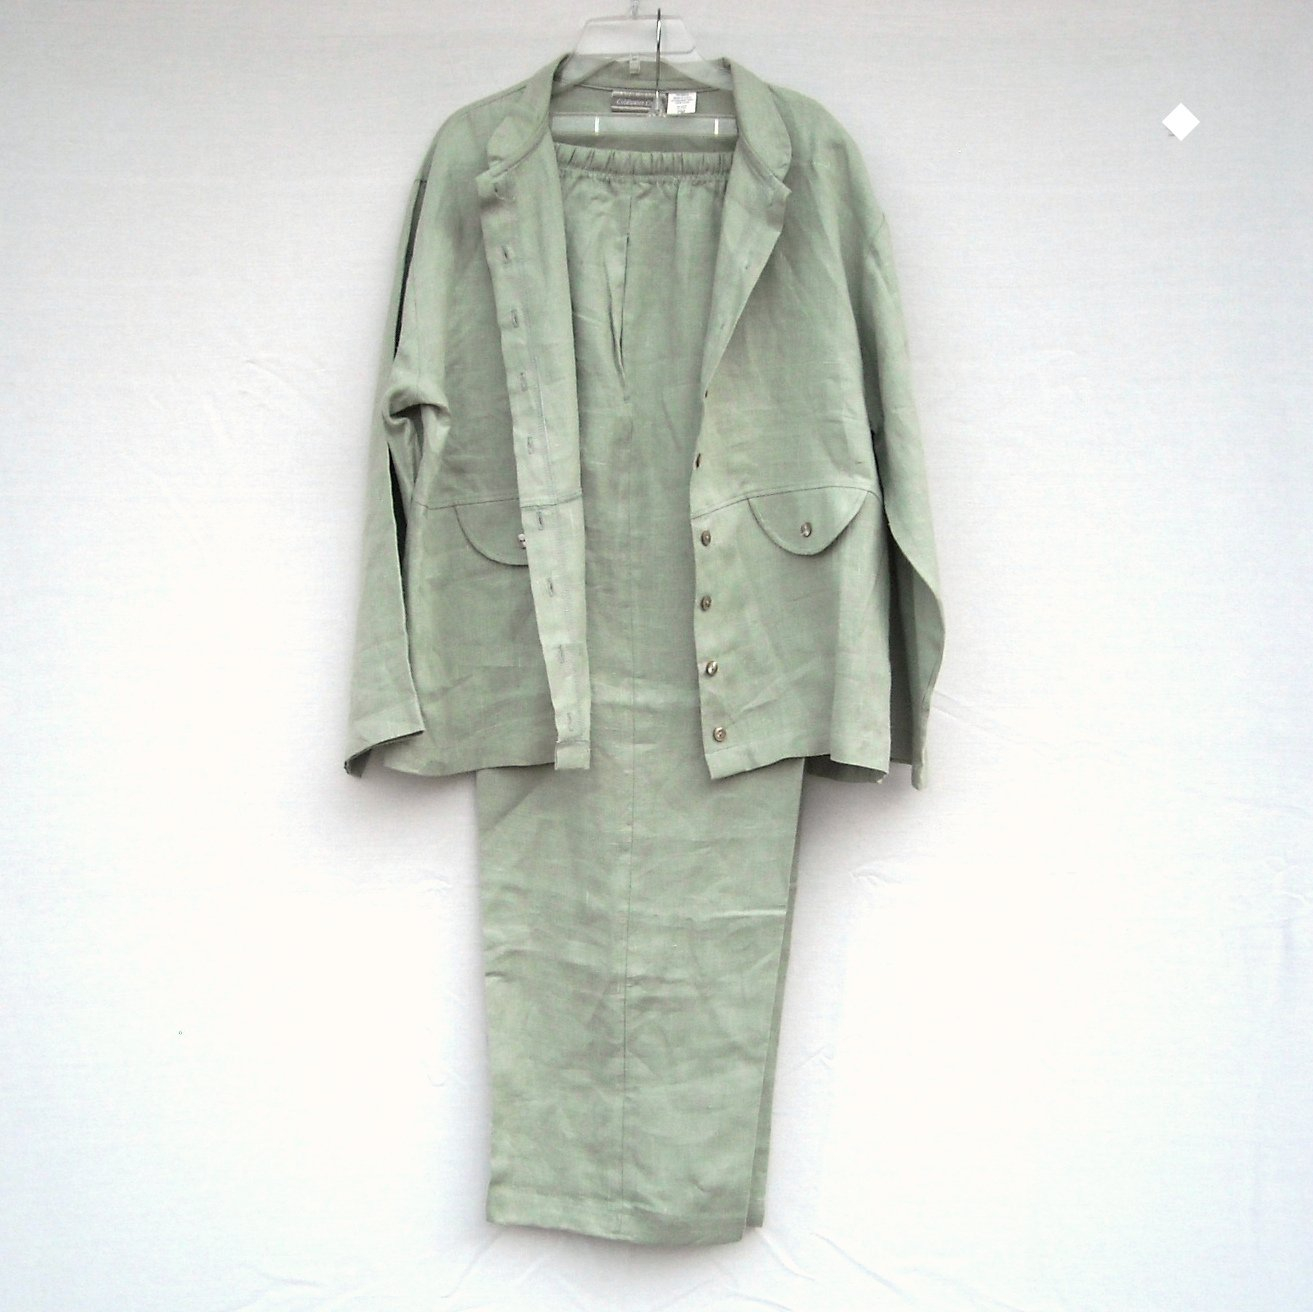 Coldwater Creek Misses Linen Jacket Pant Suit Size PM